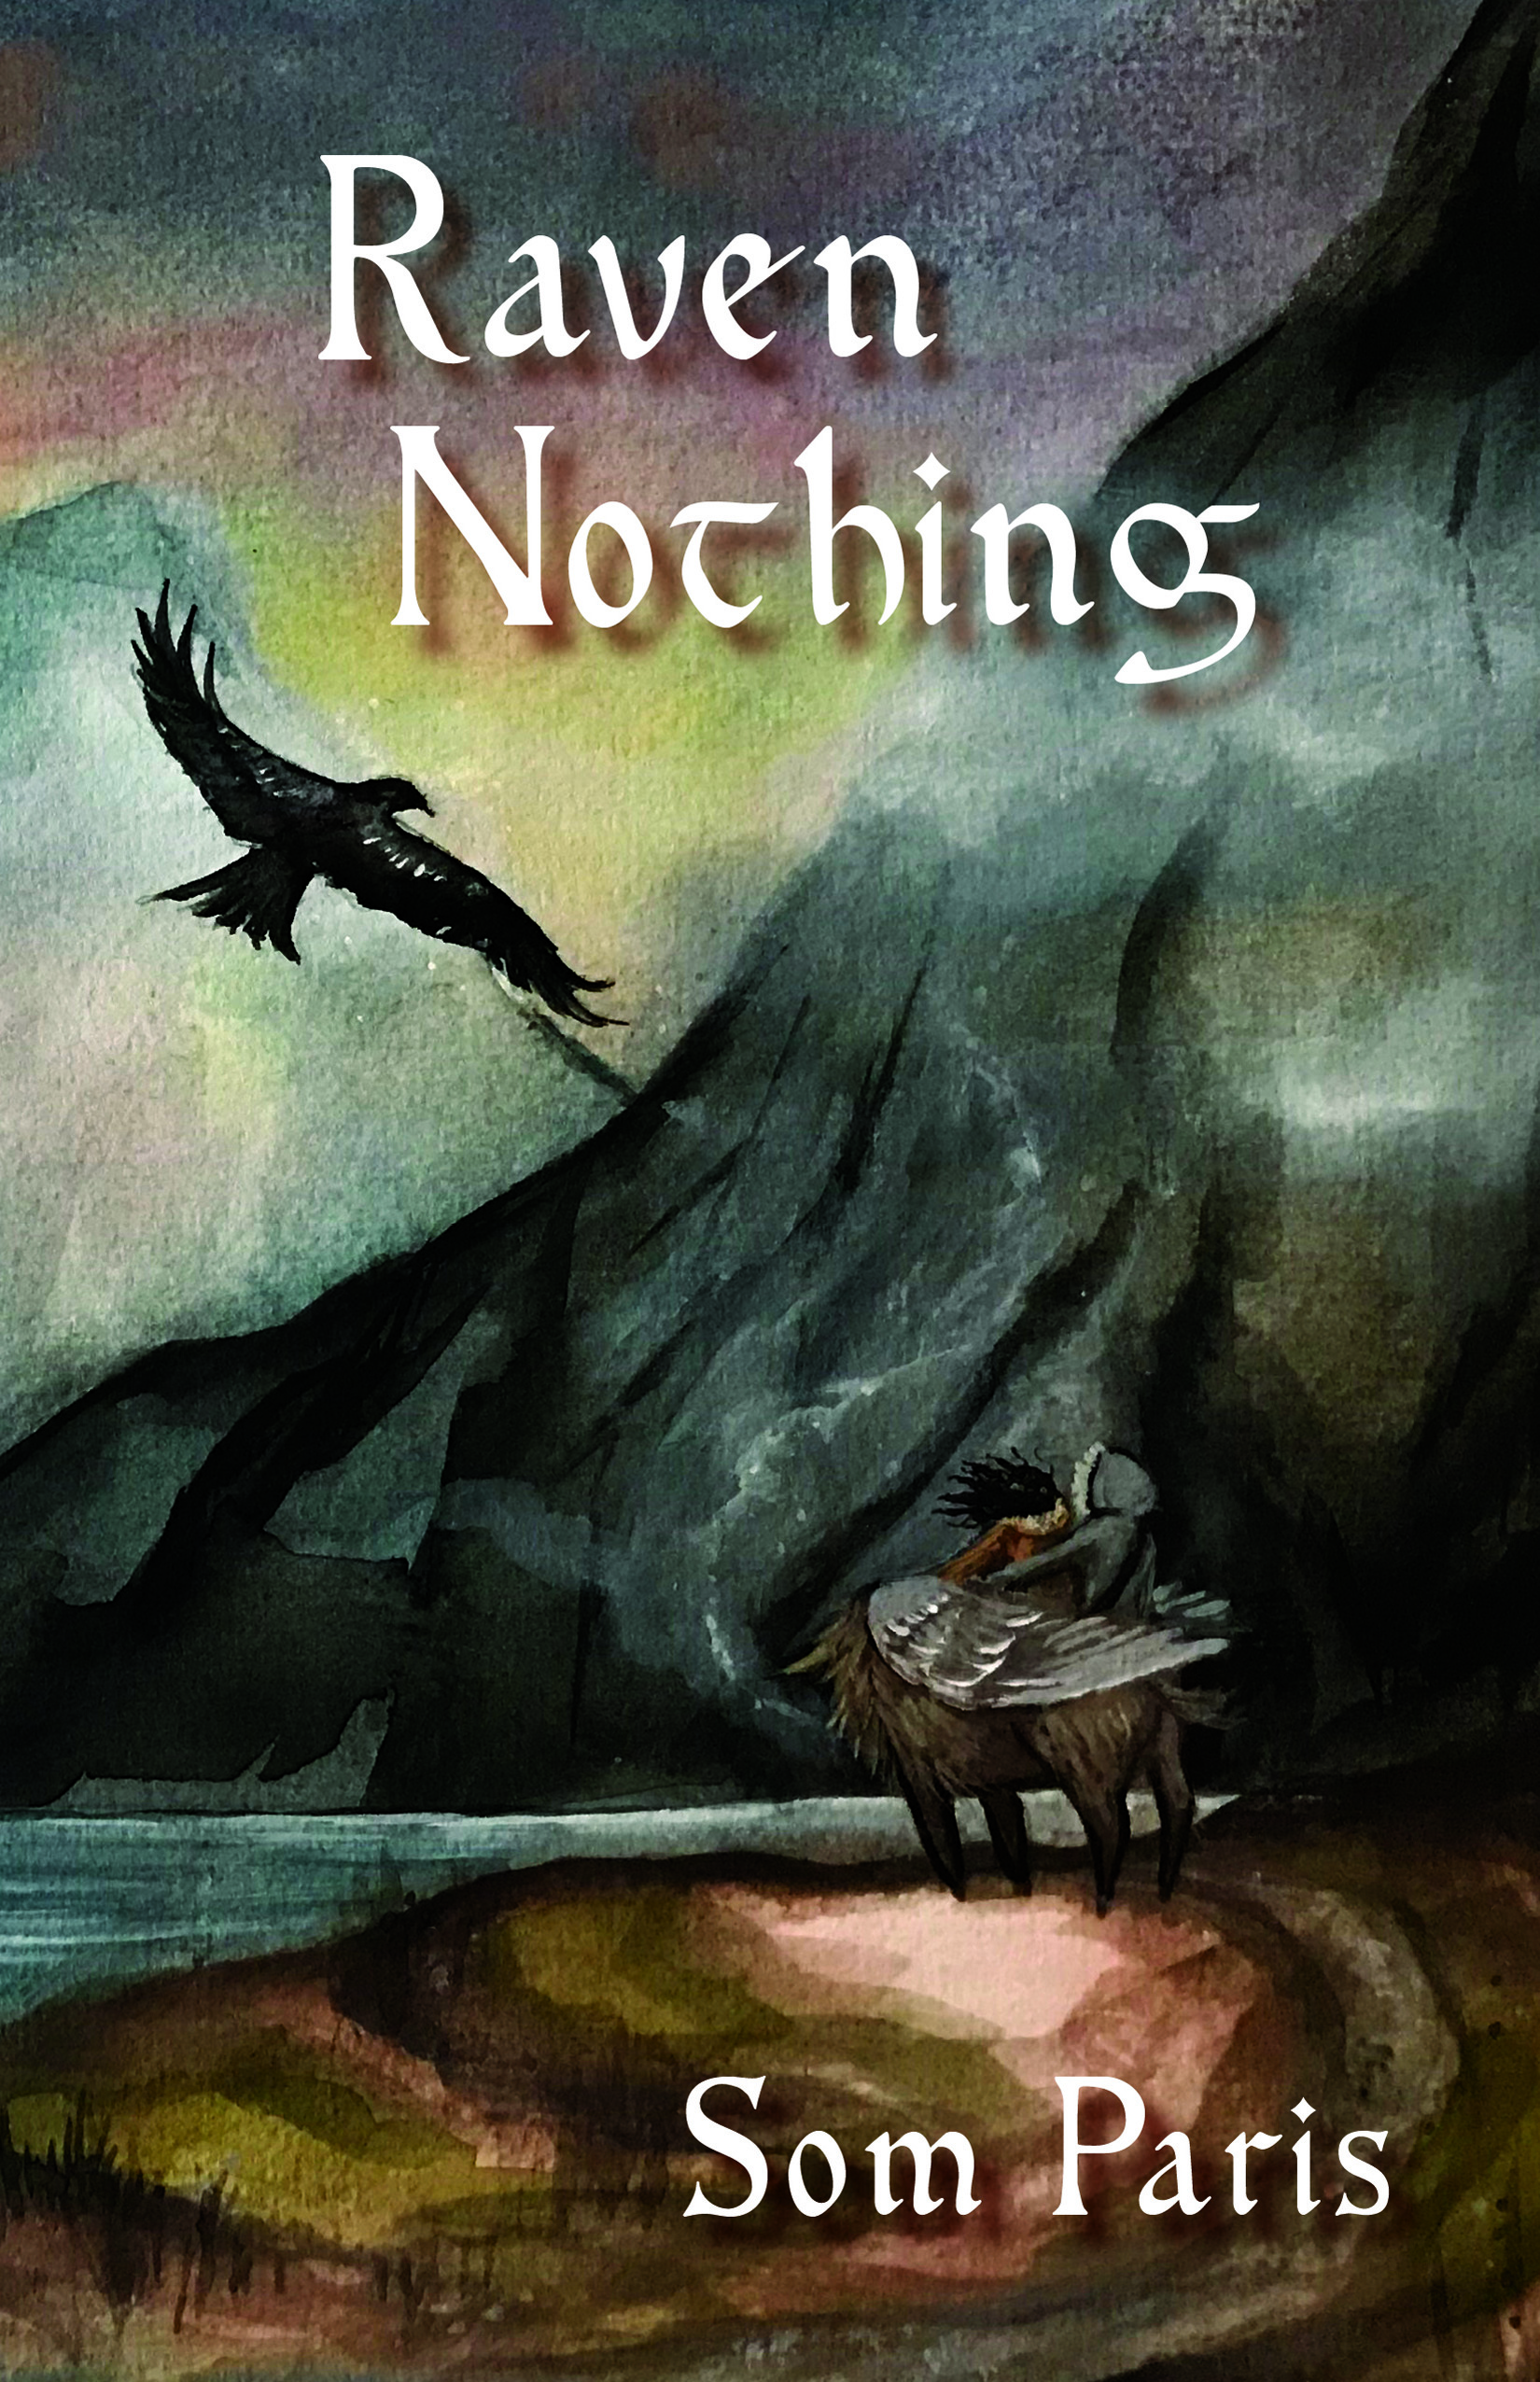 Cover image of Raven Nothing, featuring a flying raven and two kids riding an animal against a mountainous landscape